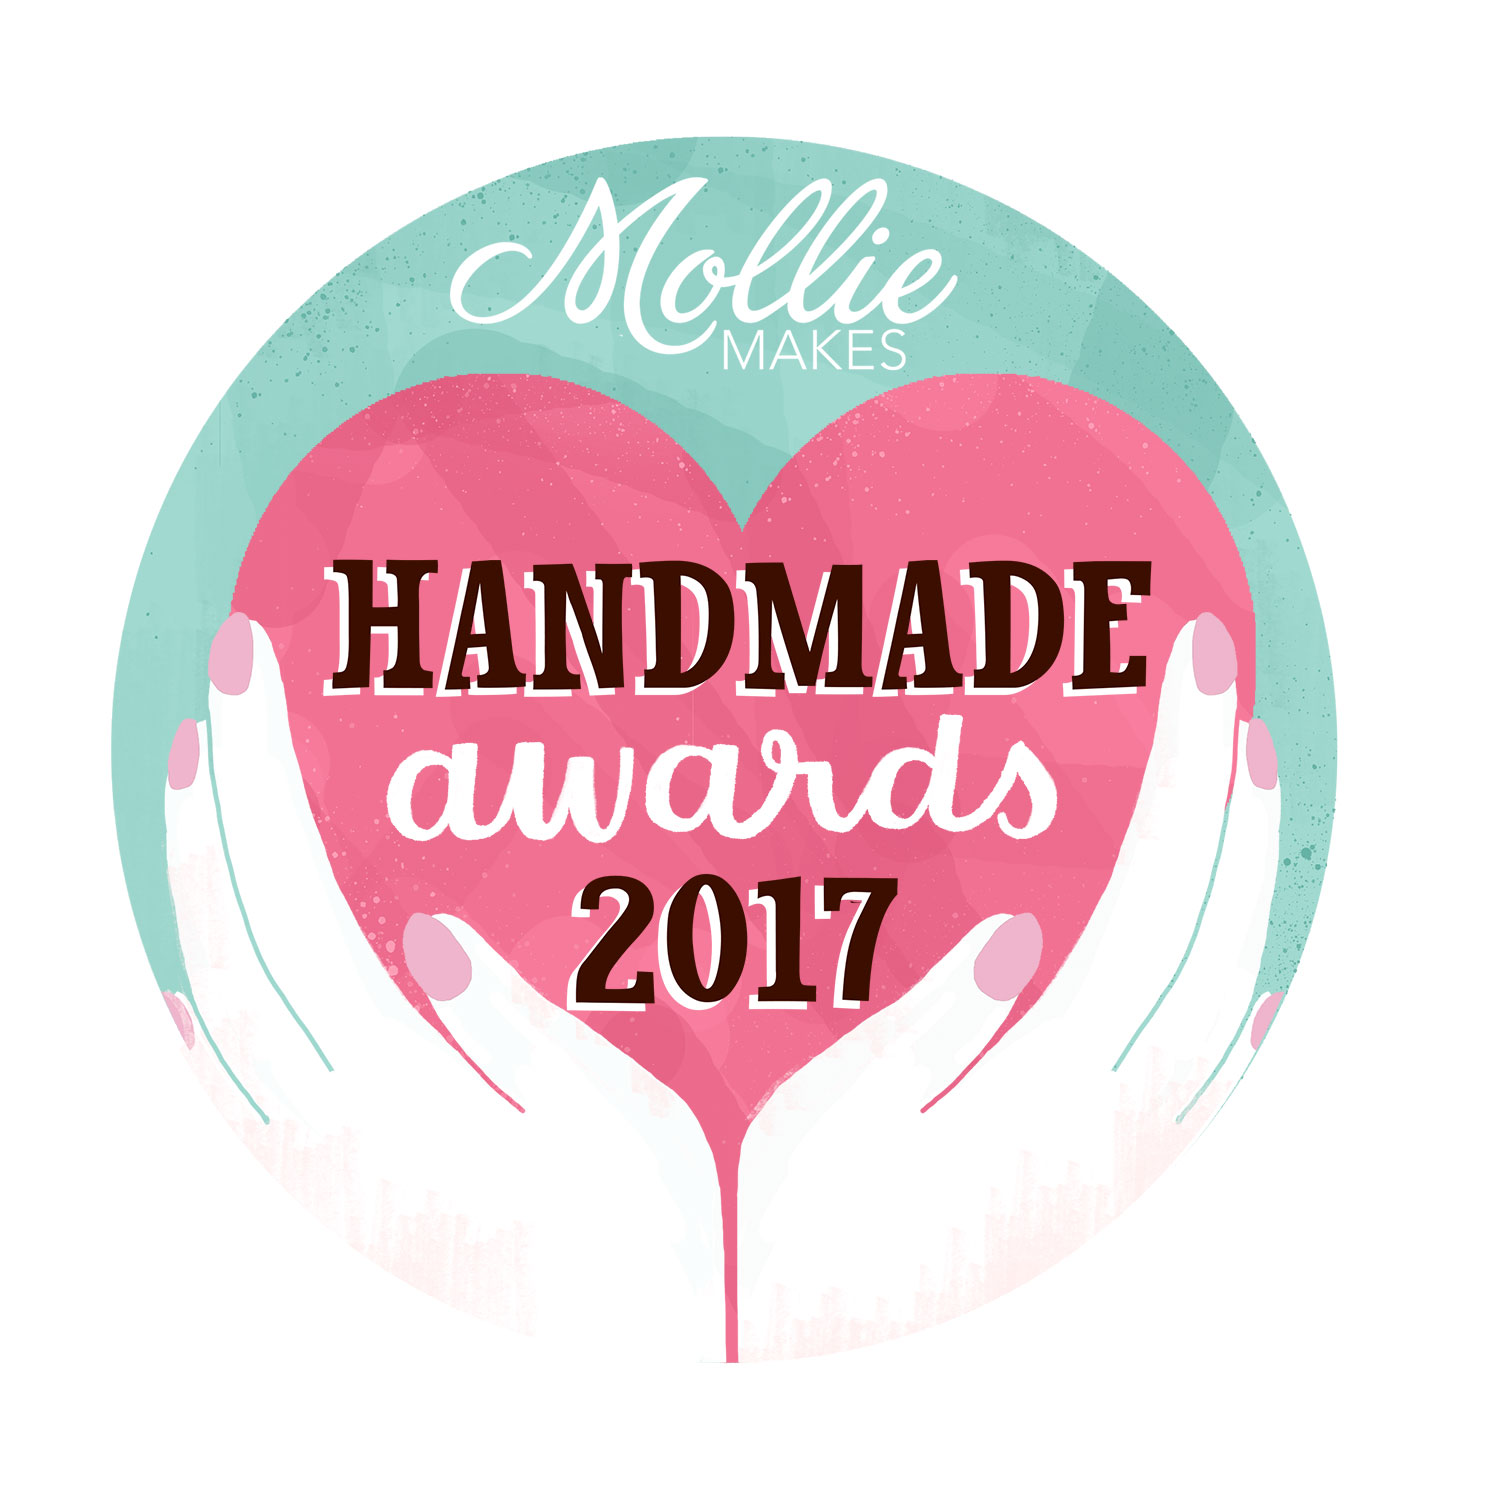 Mollie Makes Handmade Awards 2017